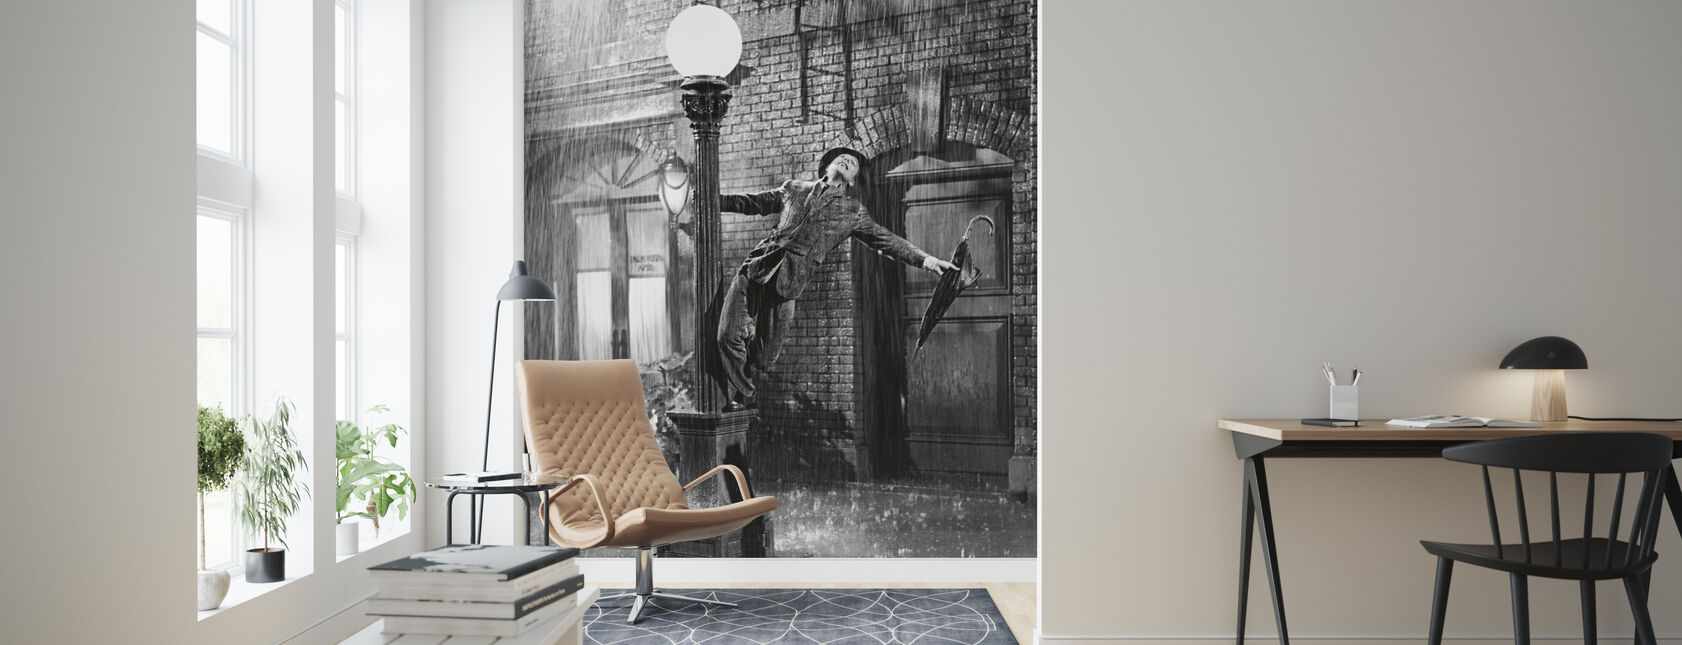 Singing - Gene Kelly - Wallpaper - Living Room